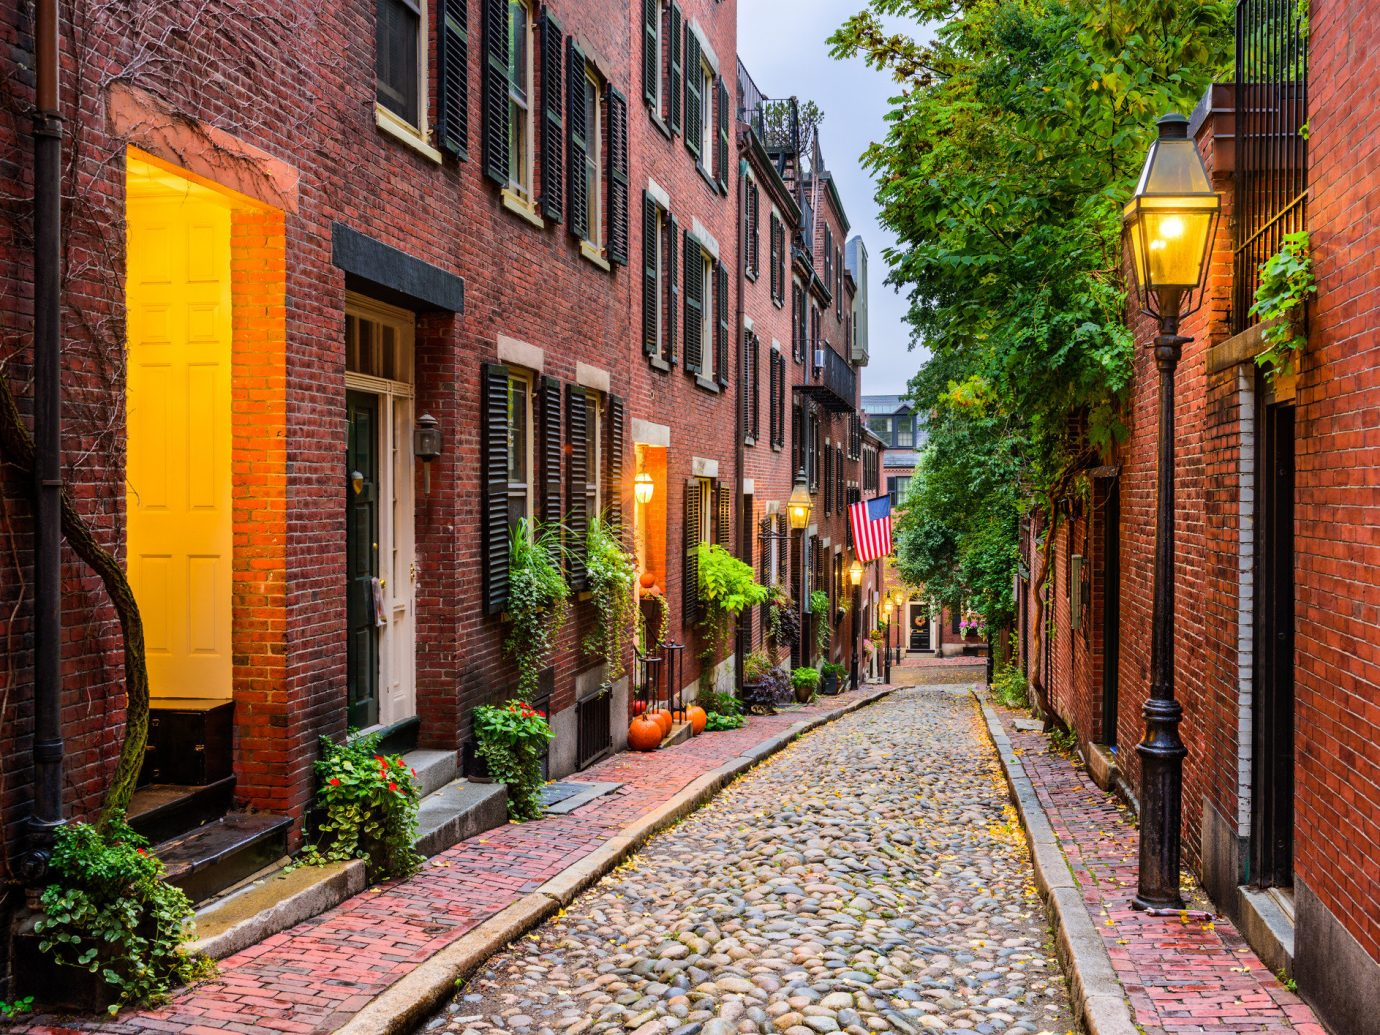 Narrow street in downtown boston